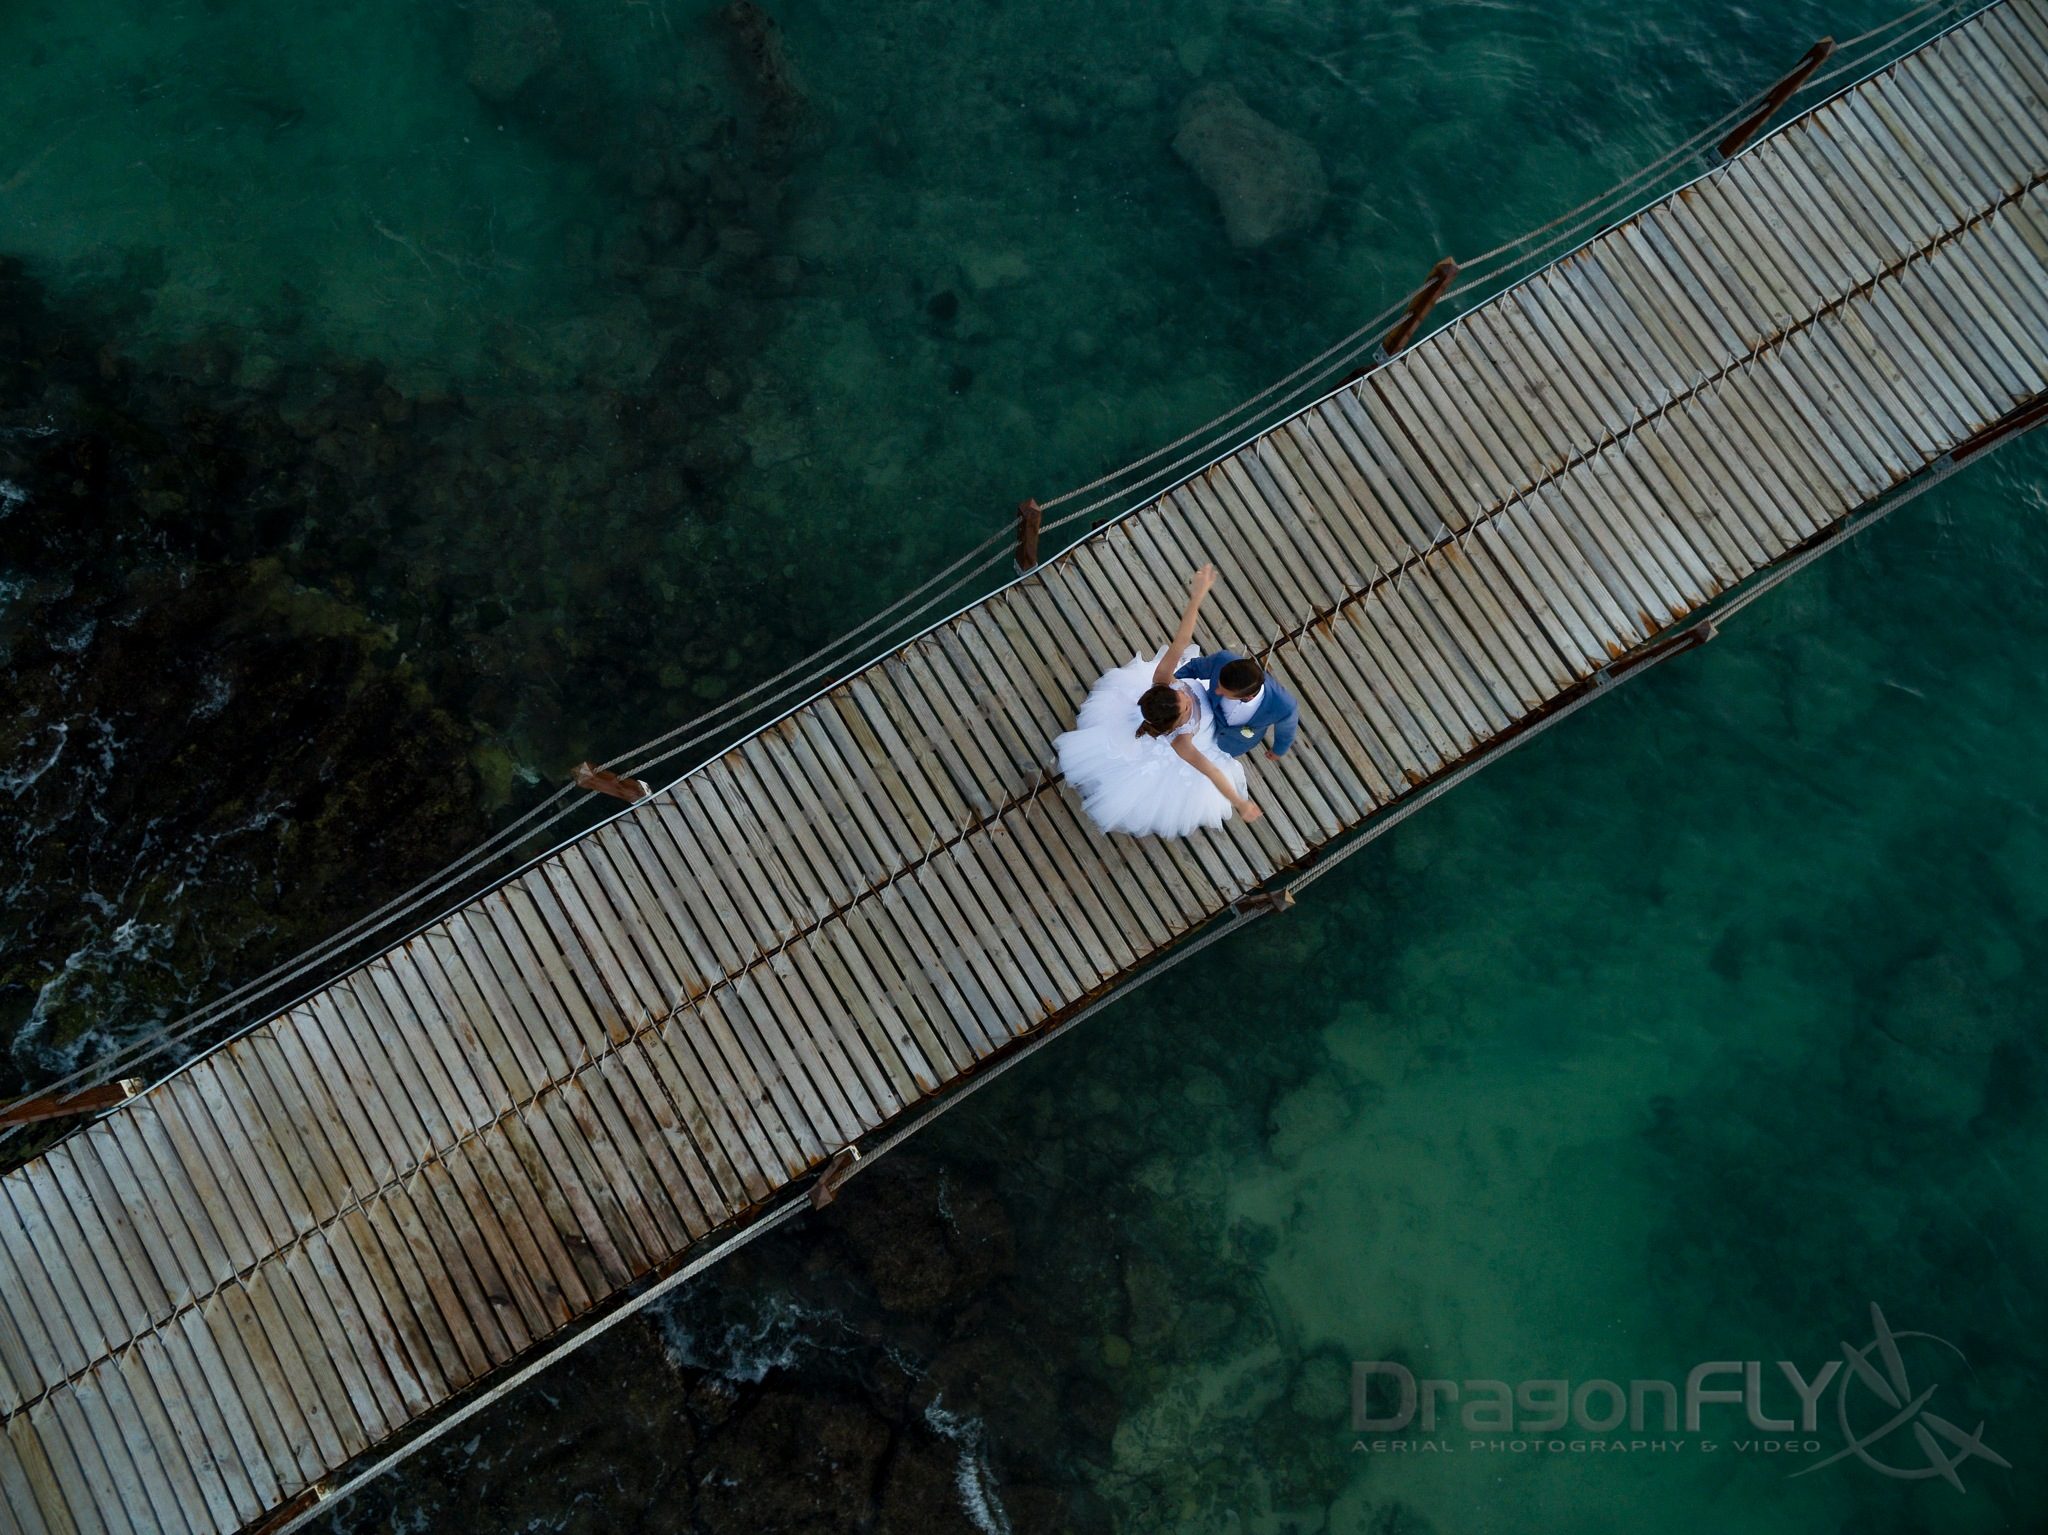 Wedding Jetty by Dragonfly_Aerial